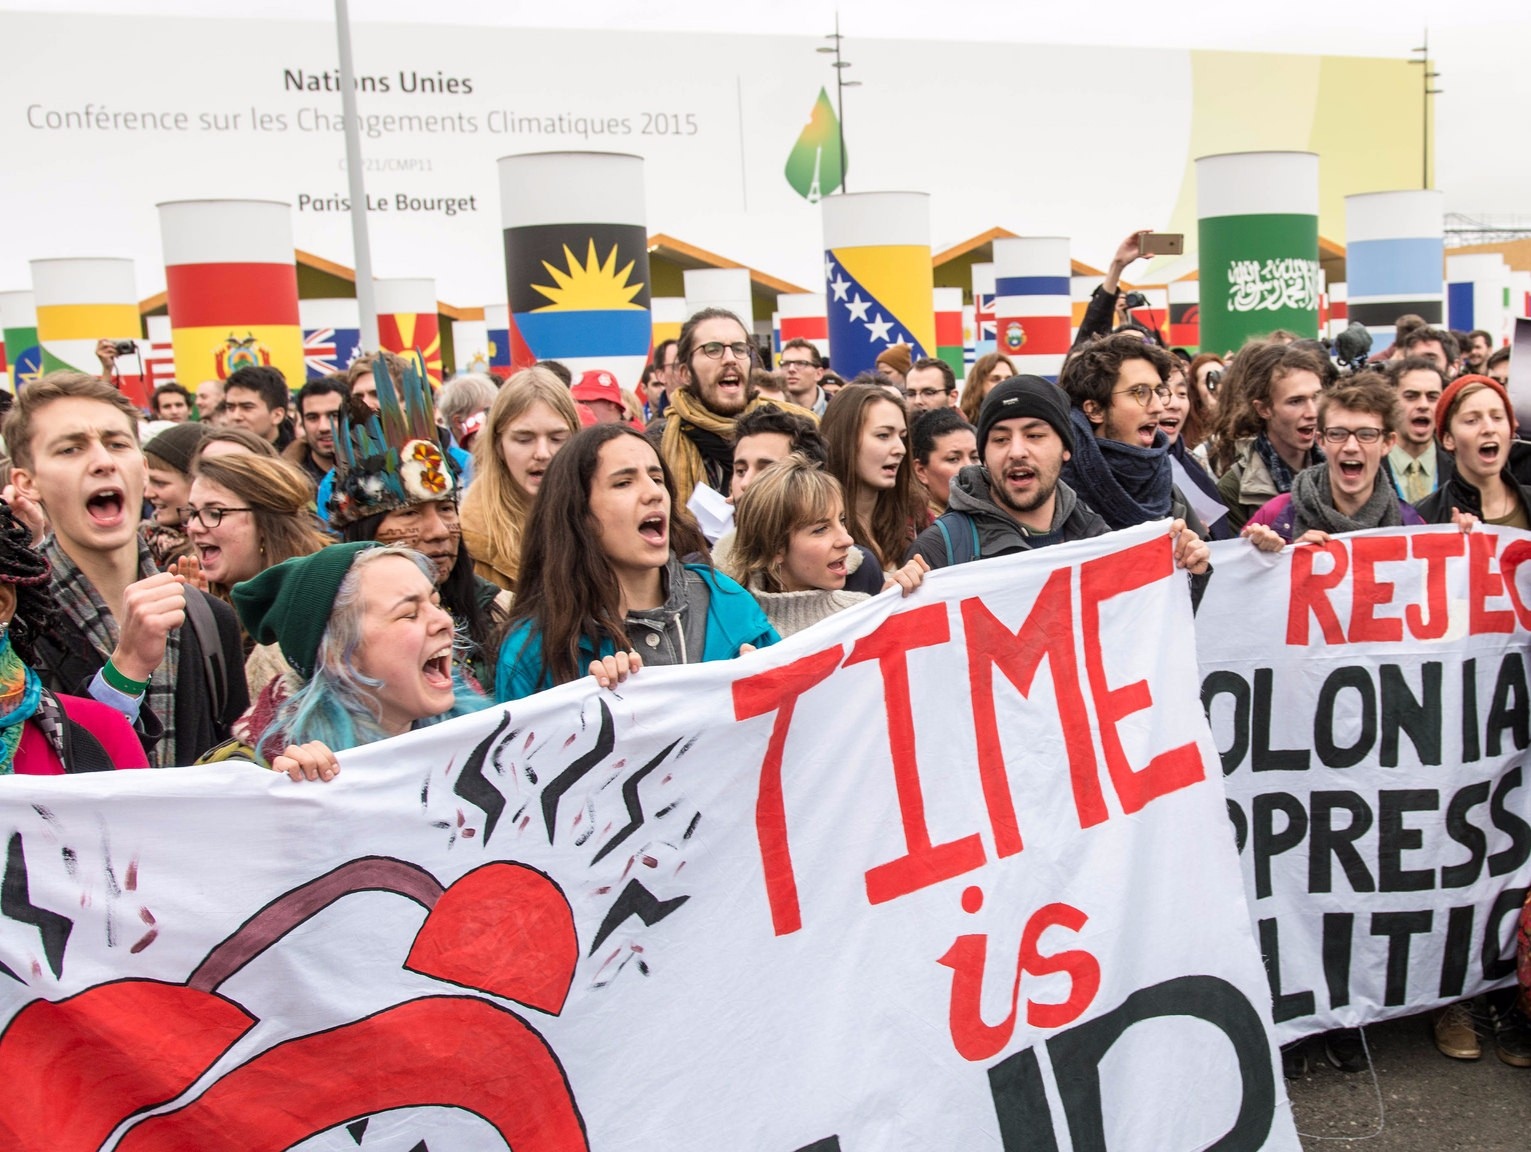 Call for Interest for the SustainUS Youth Delegation to the 2016 UN Climate Negotiations